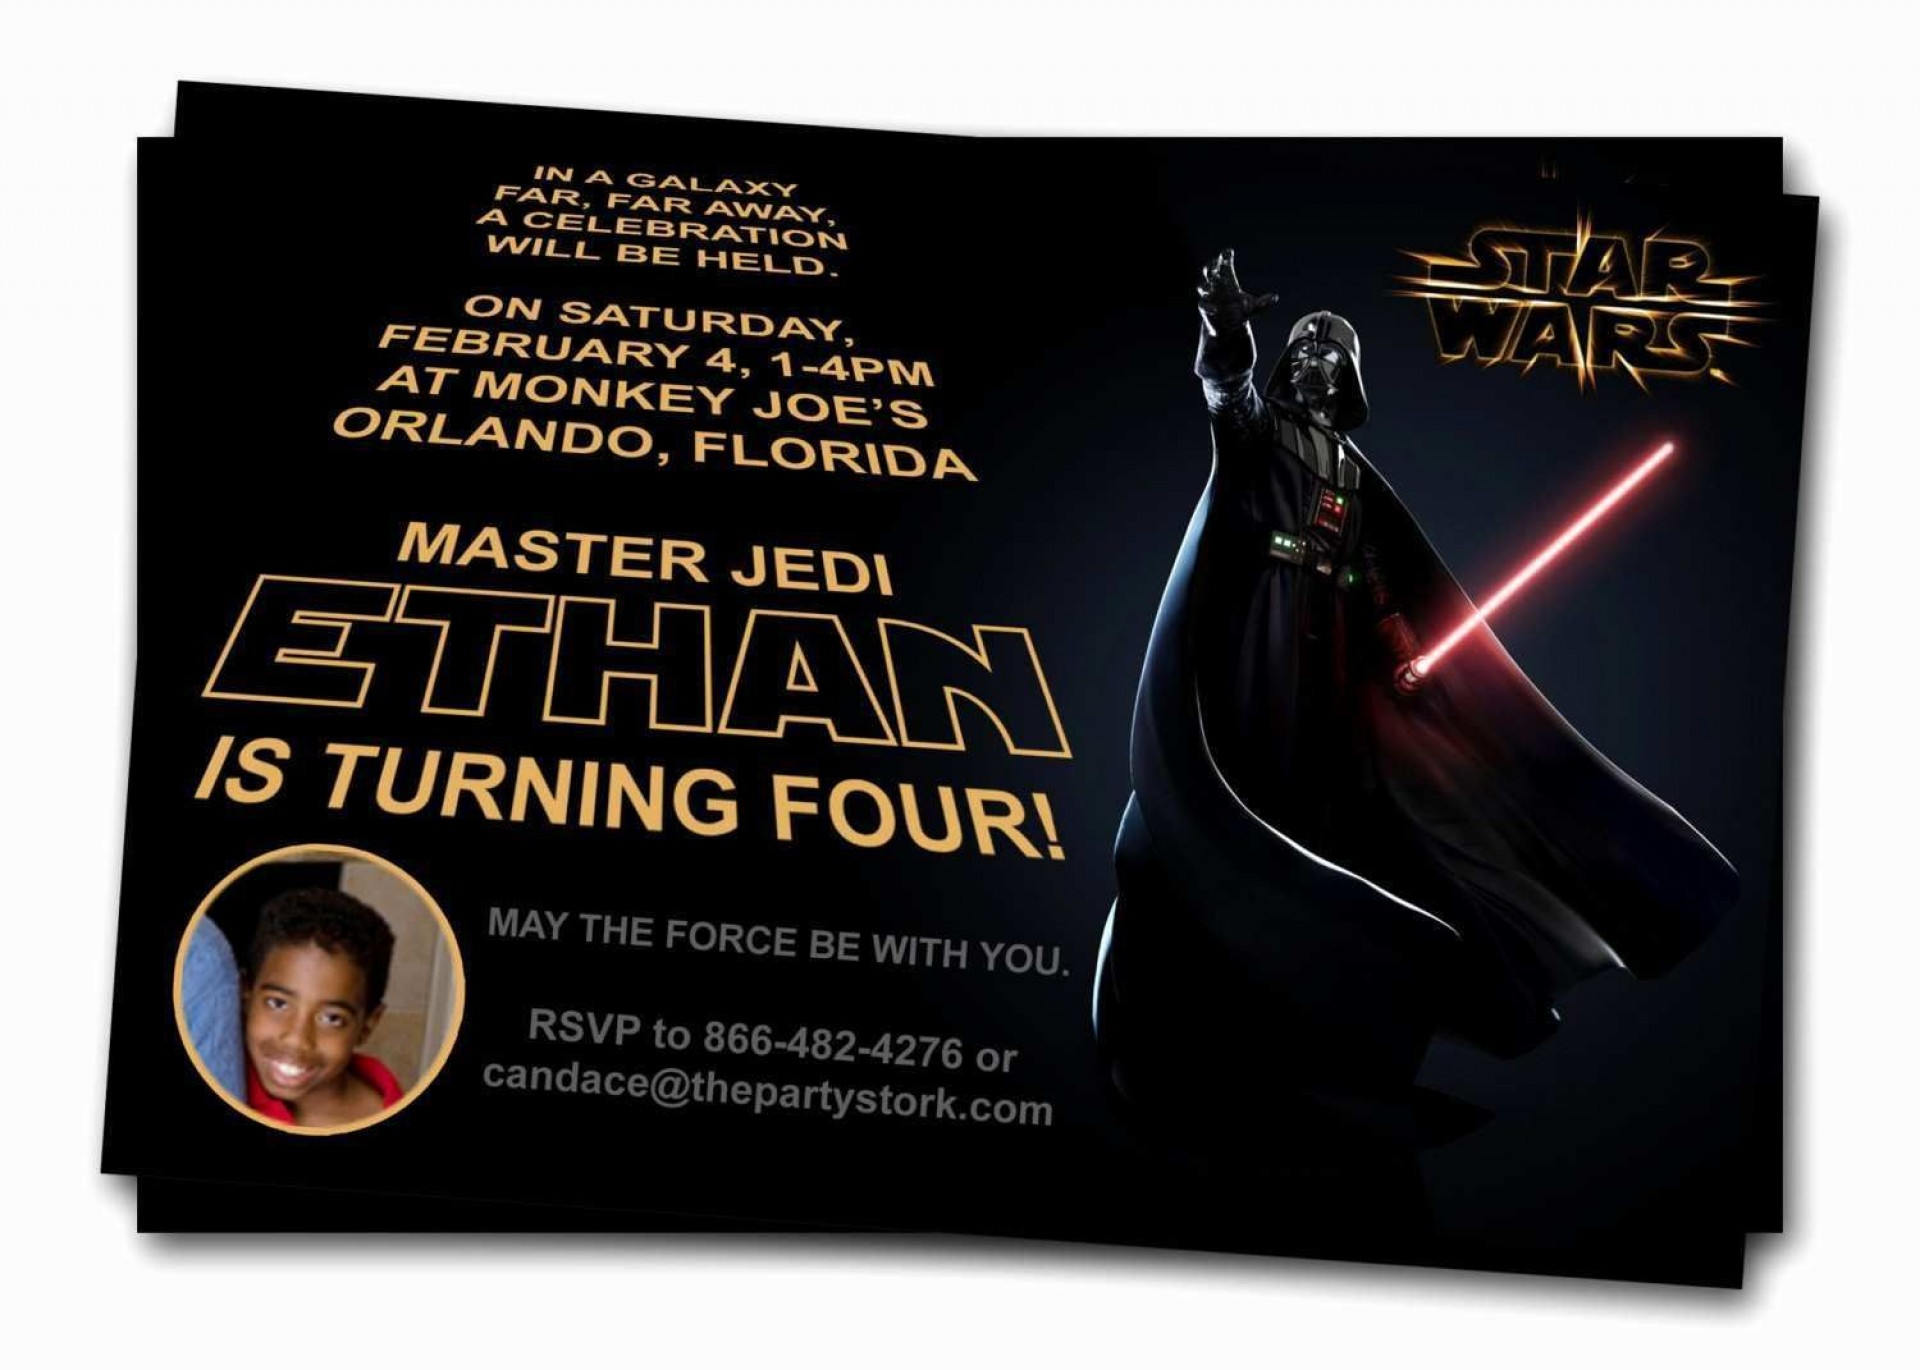 002 Dreaded Star War Birthday Invitation Template Example  Free Party Printable1920